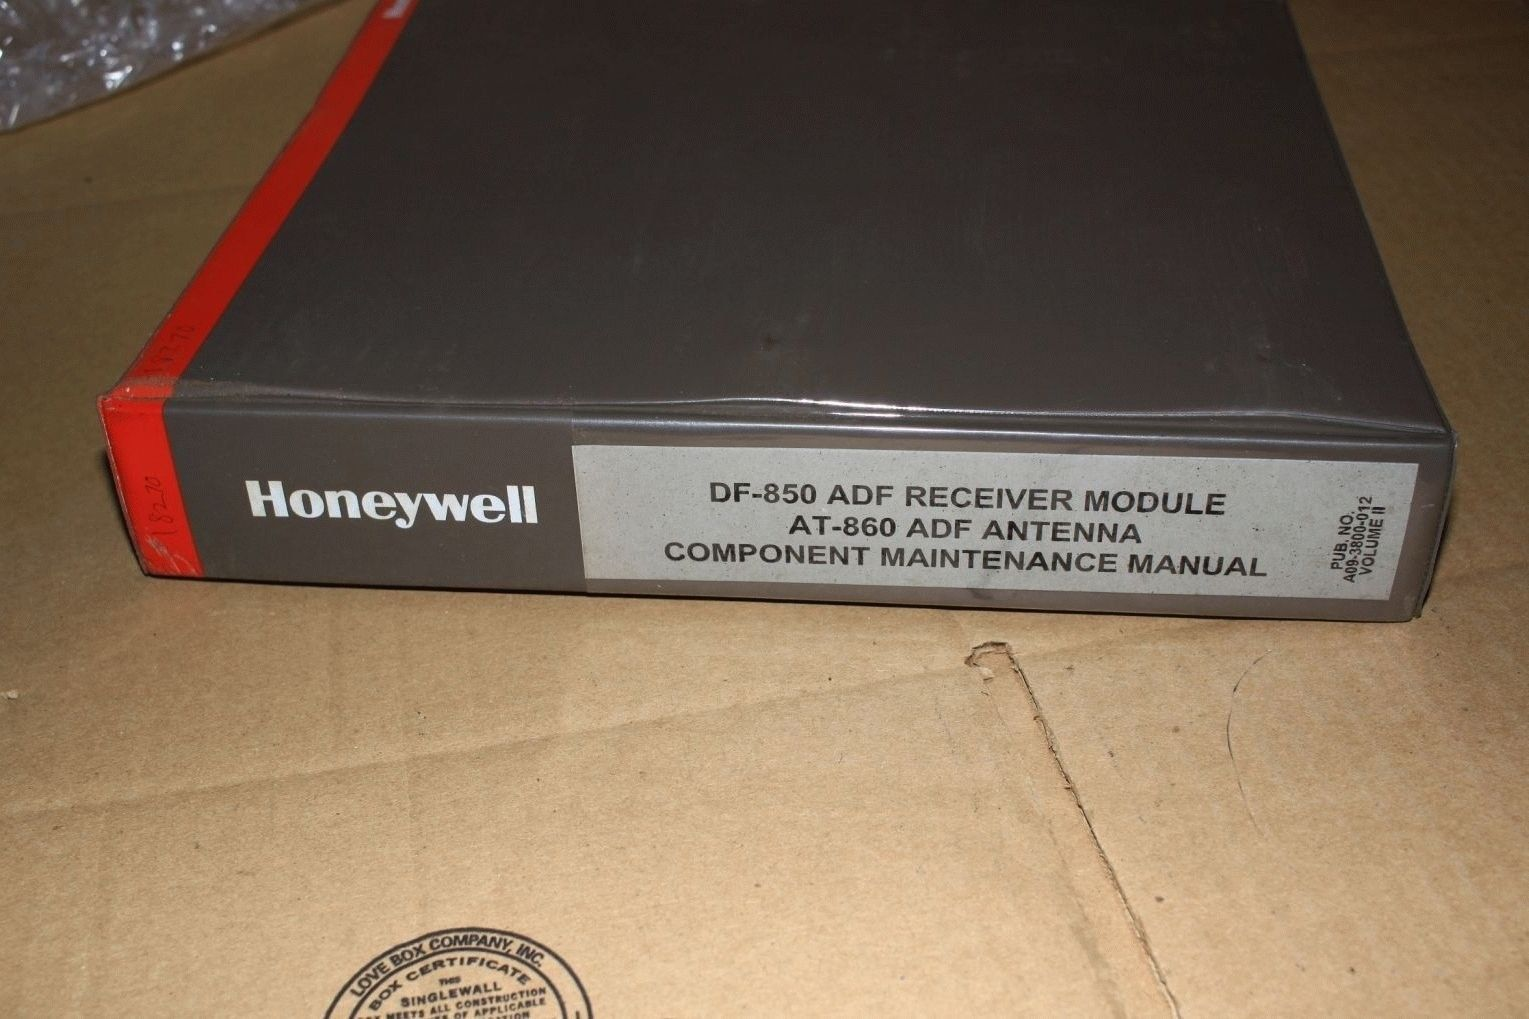 Honeywell DF-850 ADF Receiver AT-860 Antenna and 50 similar